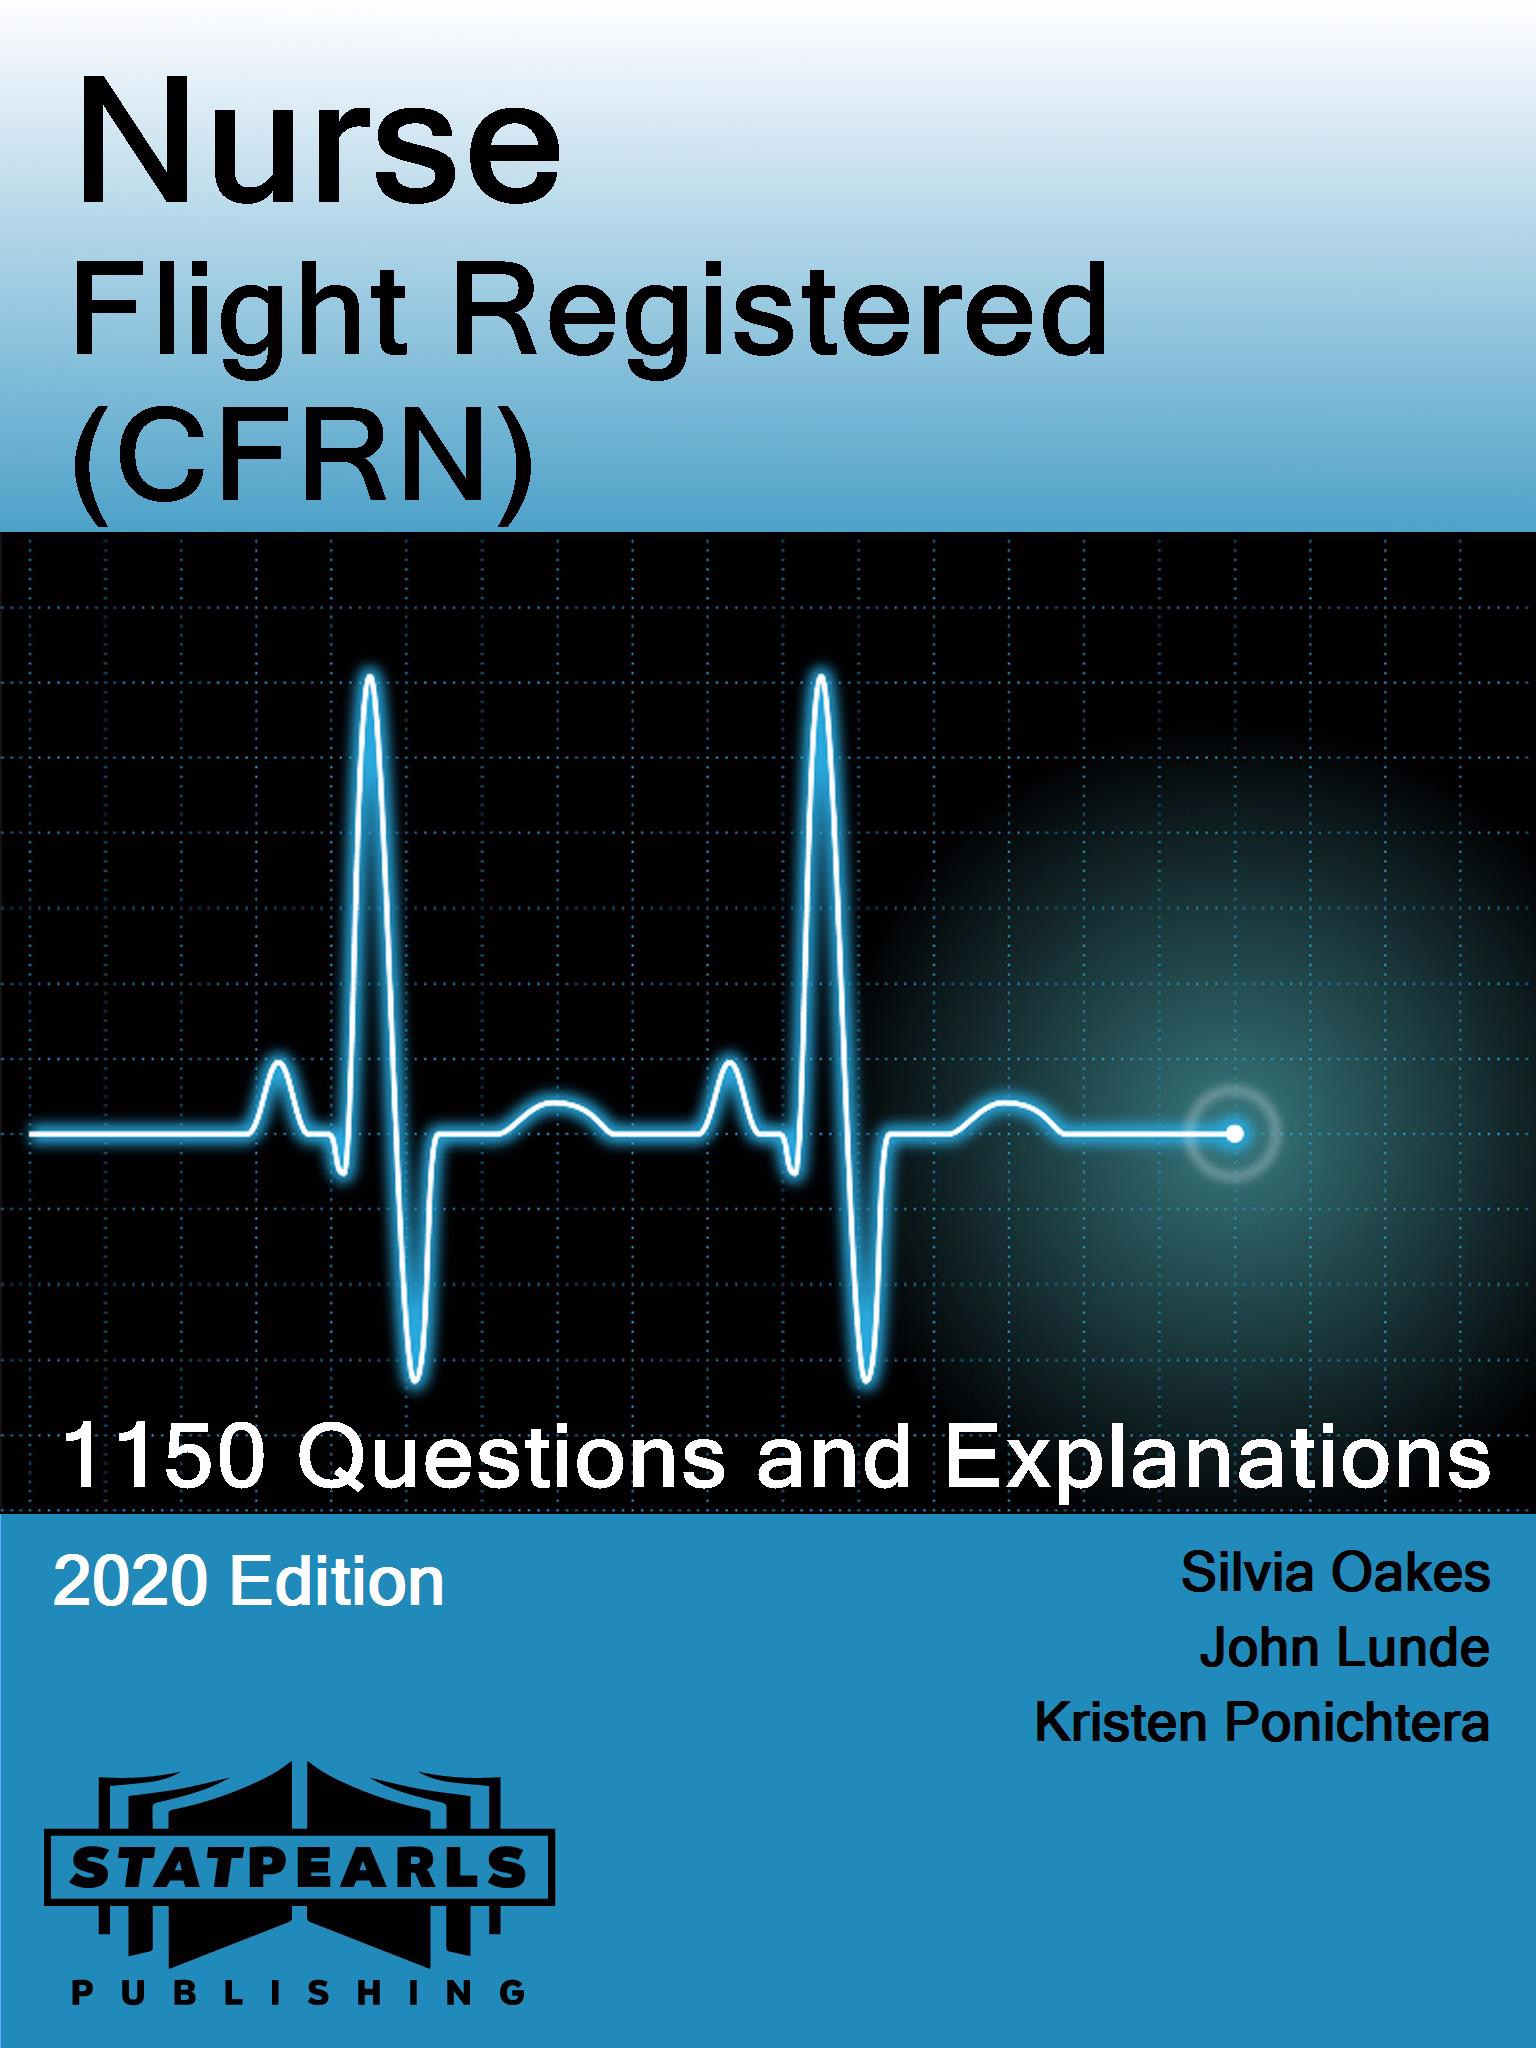 Nurse Flight Registered (CFRN)